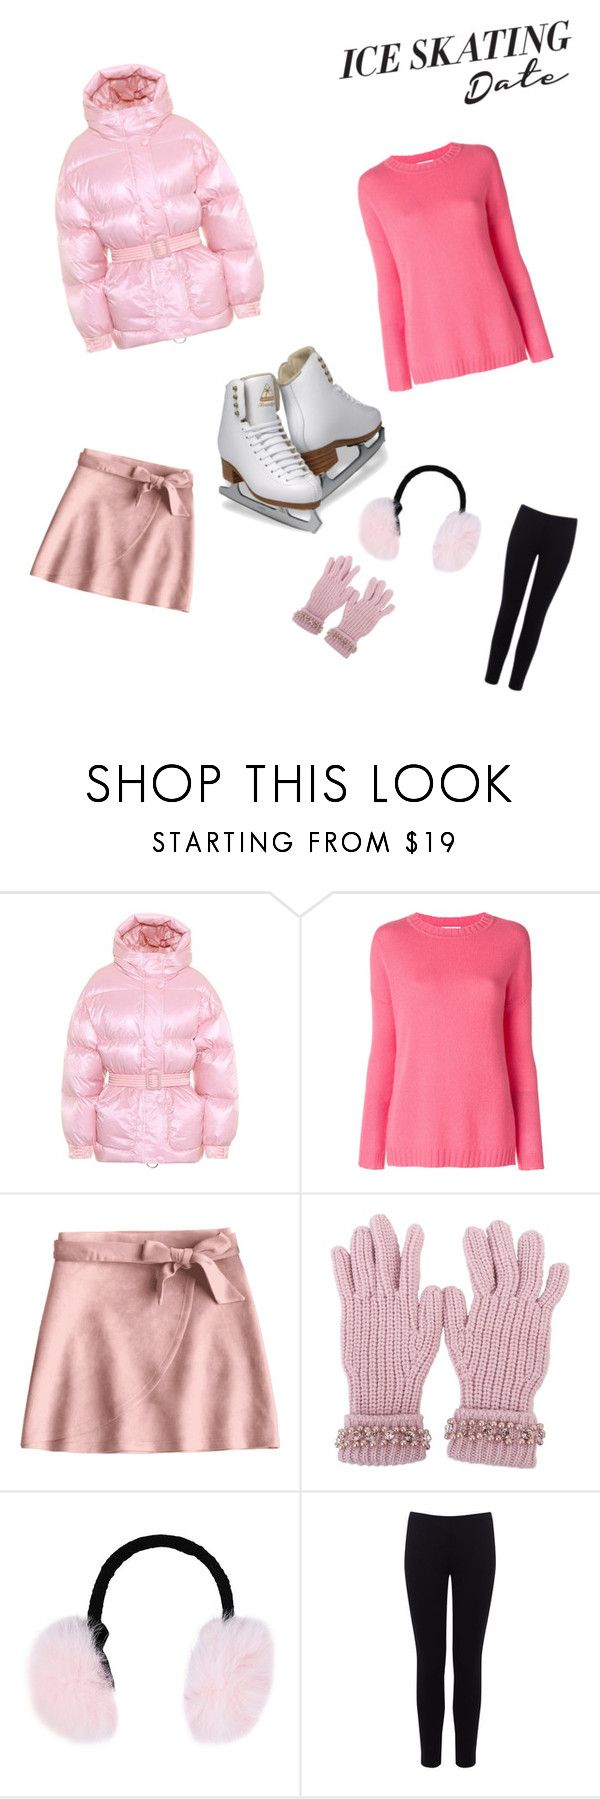 """""""Pink Ice skating"""" by emily-klaus ❤ liked on Polyvore featuring Ienki Ienki, Allude, Blugirl, Steve Madden, Warehouse and iceskatingoutfit"""